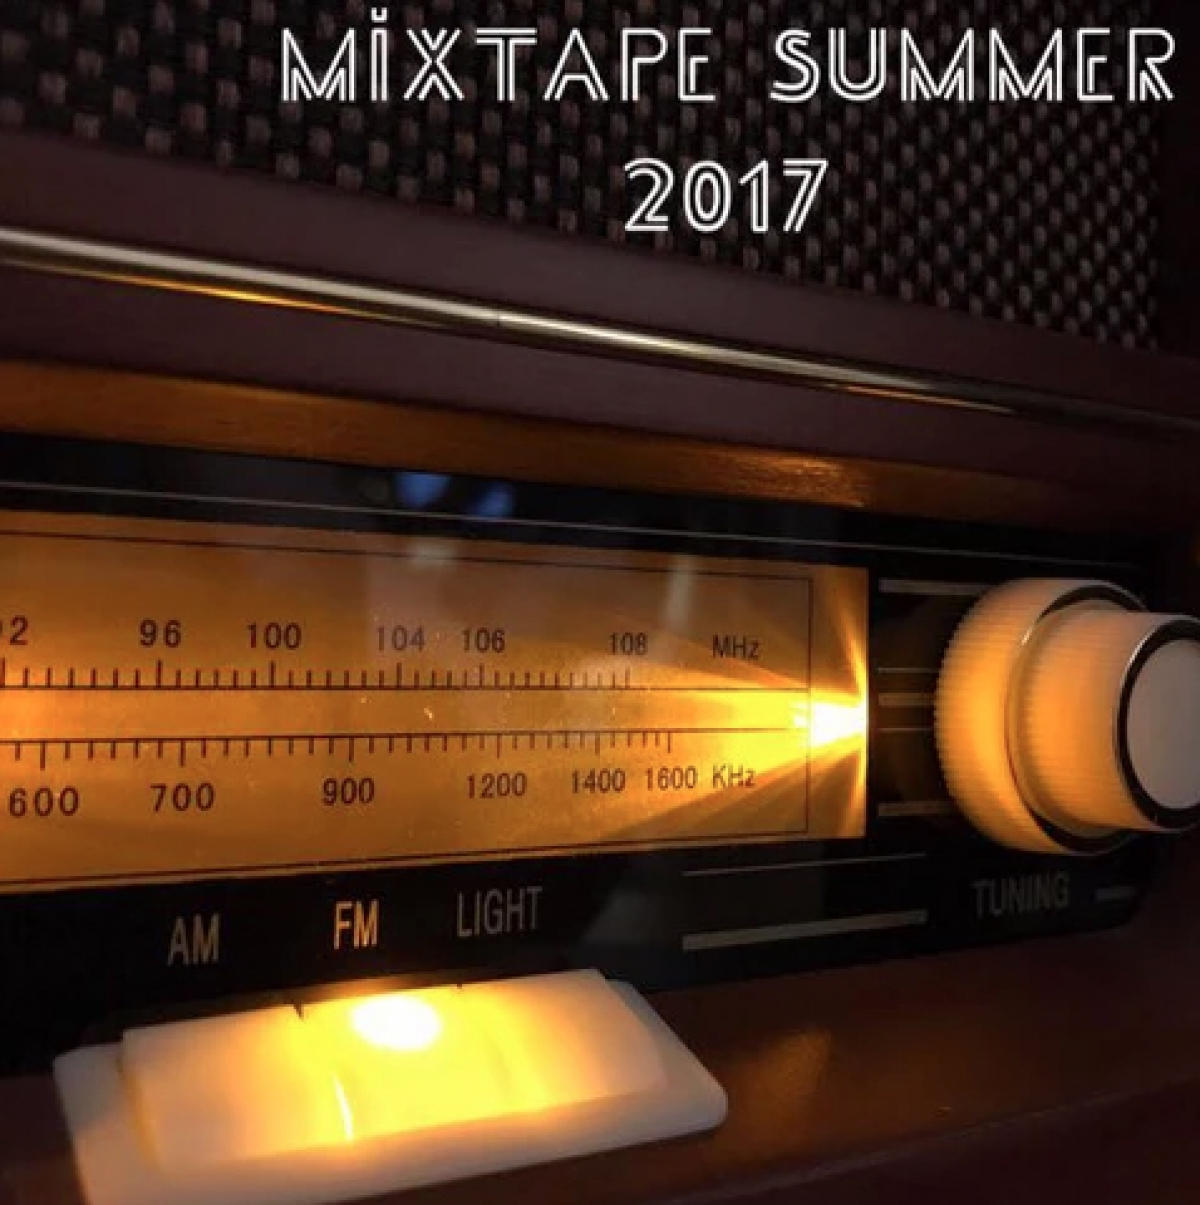 Mixtape. Summer 2017